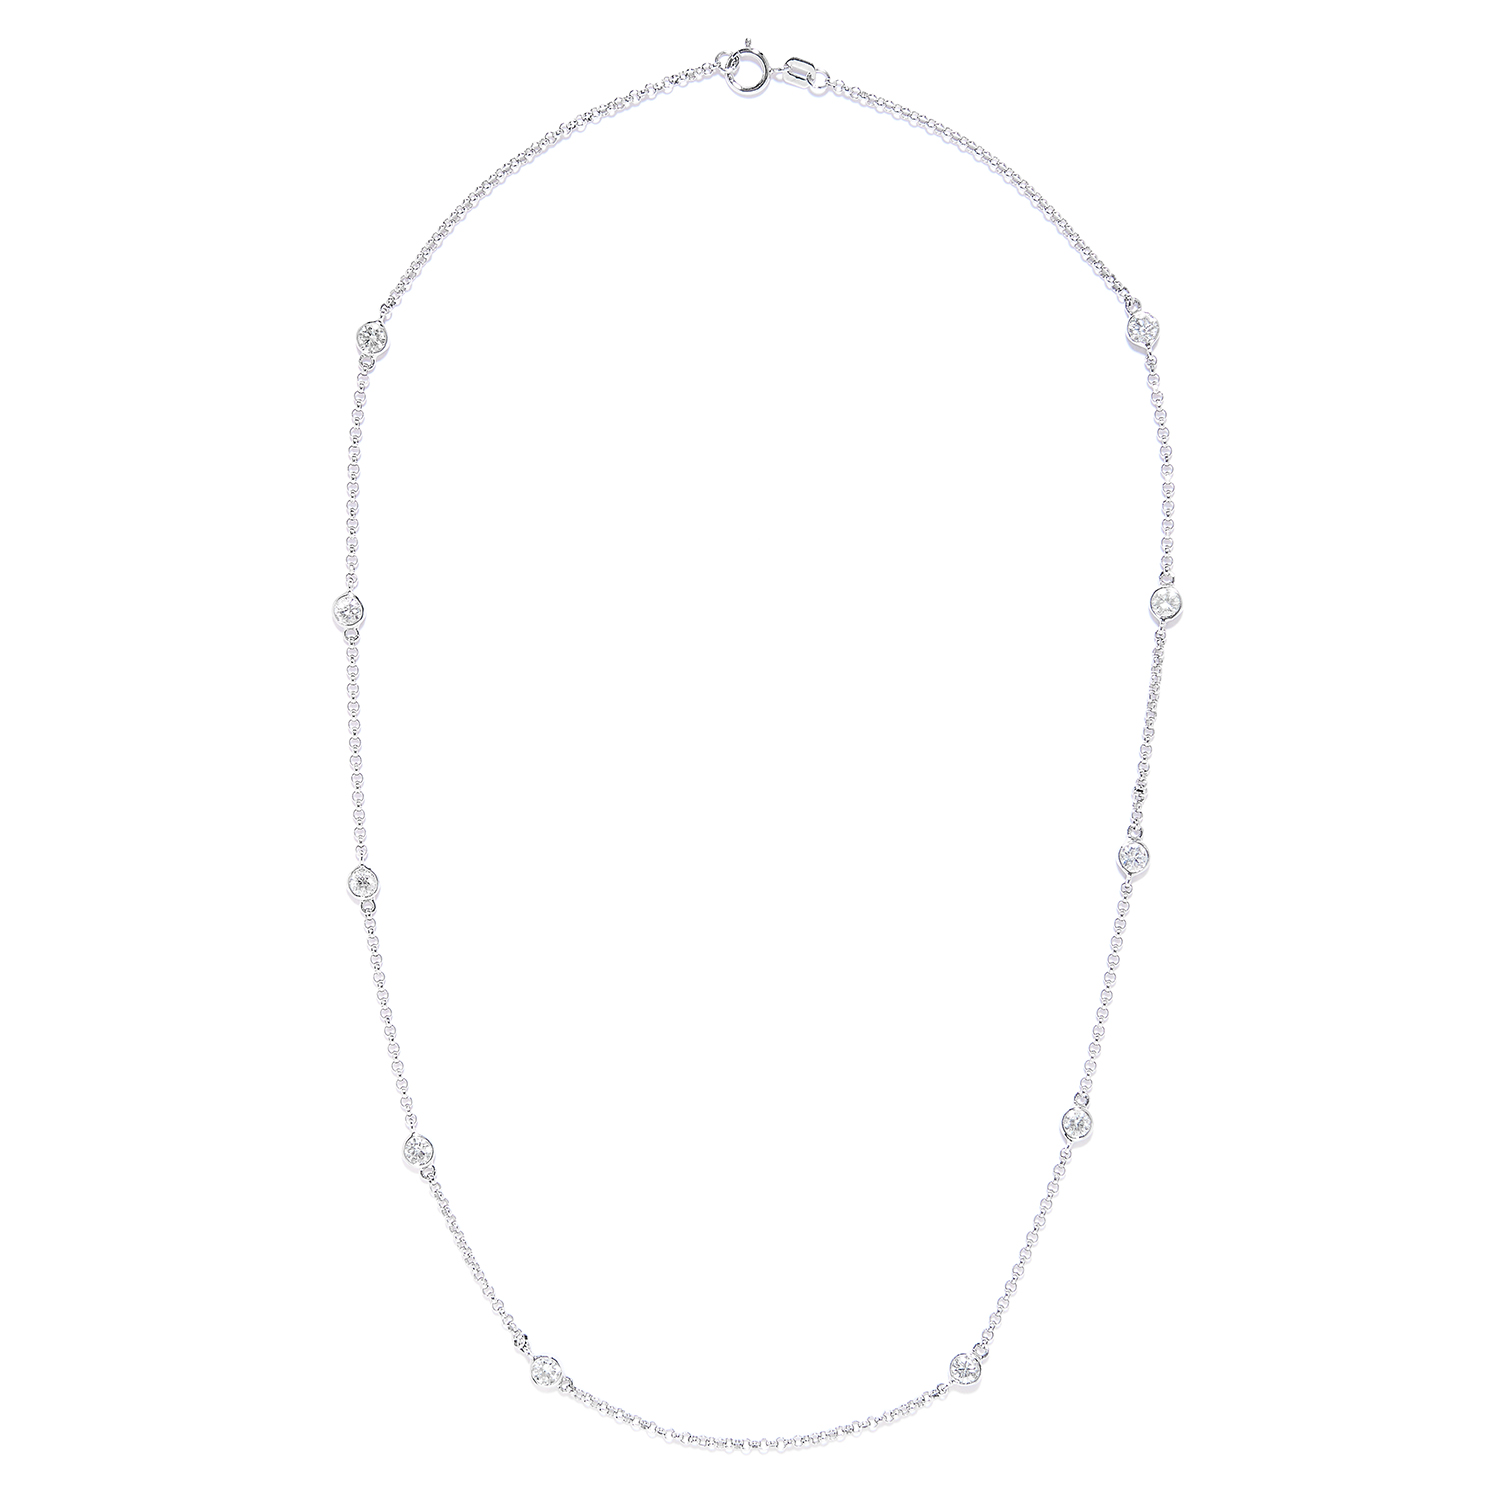 1.85 CARAT DIAMOND CHAIN NECKLACE in 18ct white gold, set with ten round cut diamonds totalling